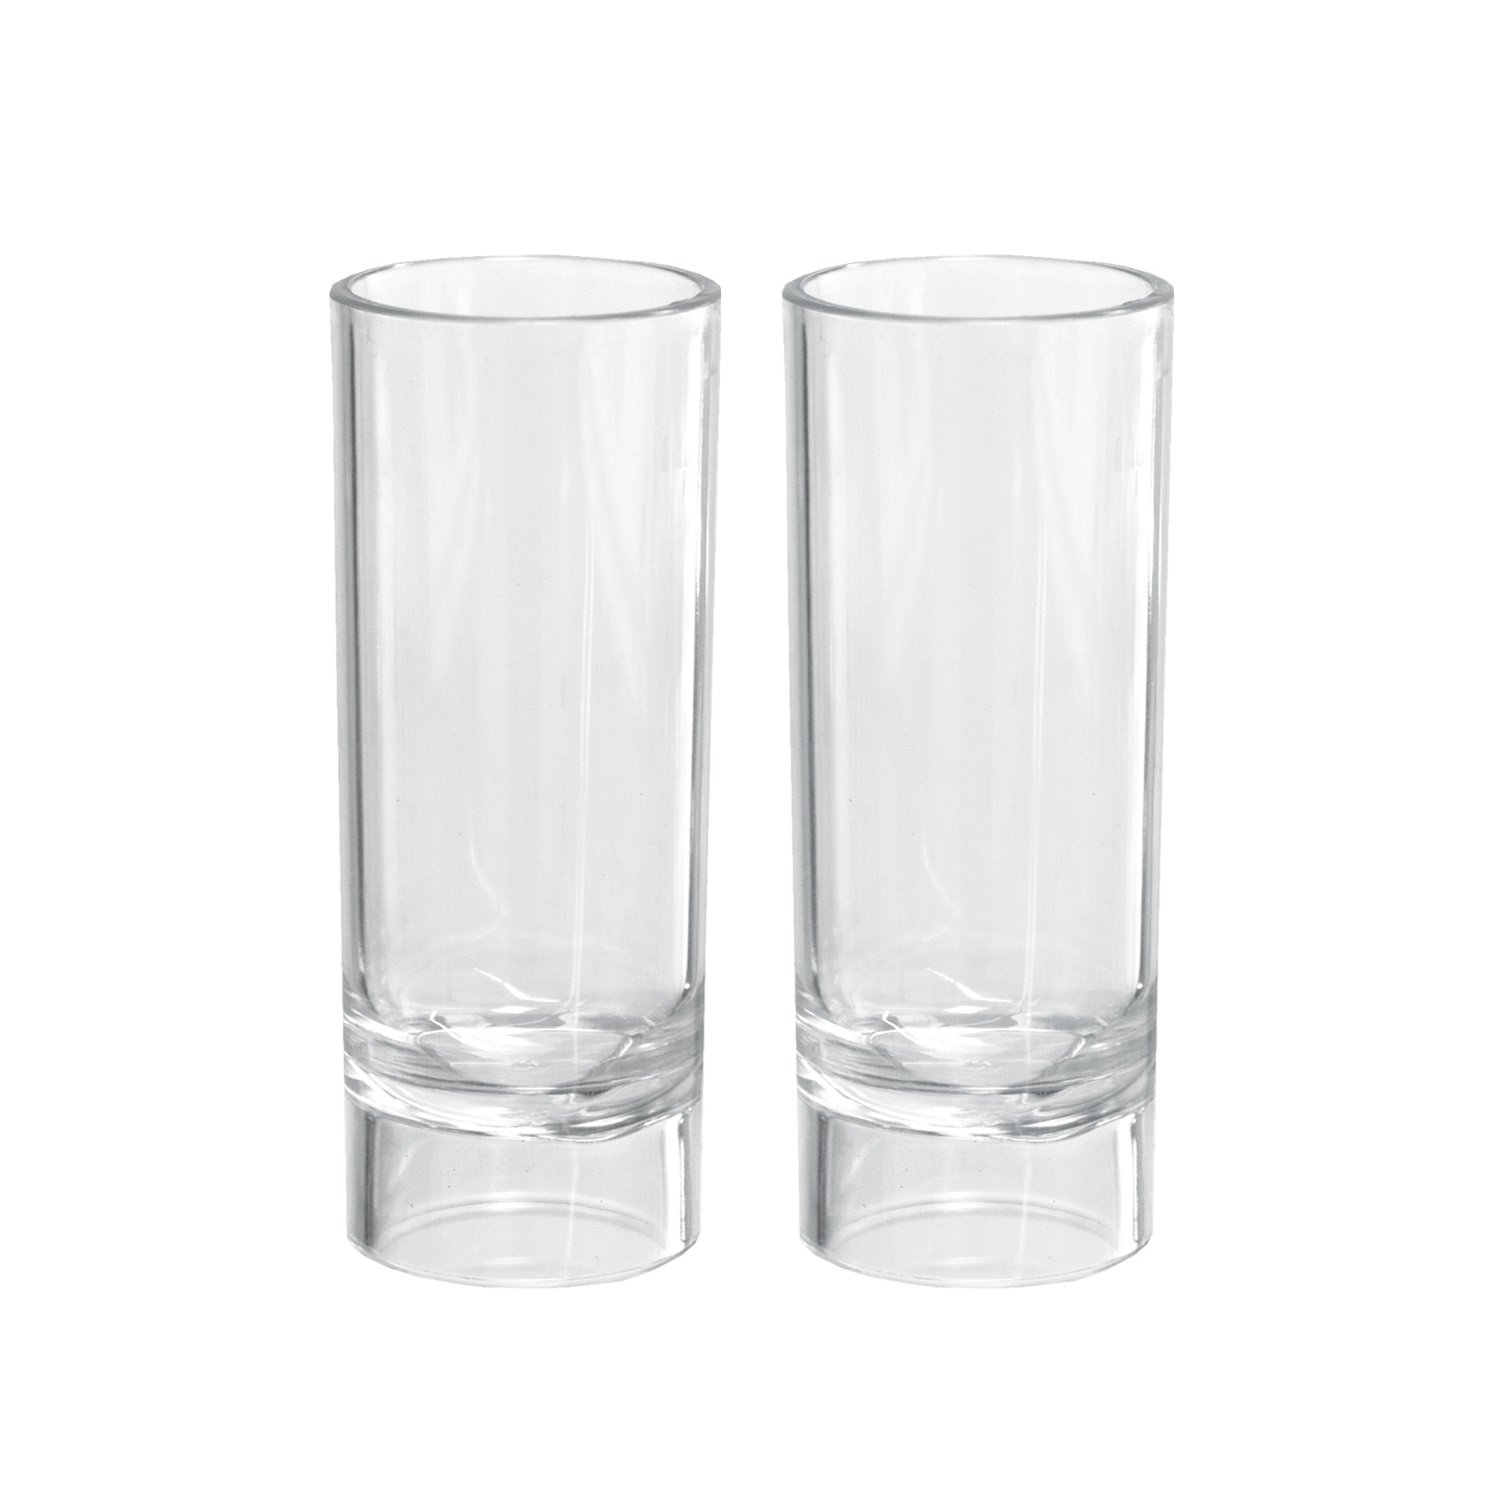 Party Essentials Hard Plastic 2-Ounce Shooter Glasses, Clear, 10 Count by Party Essentials